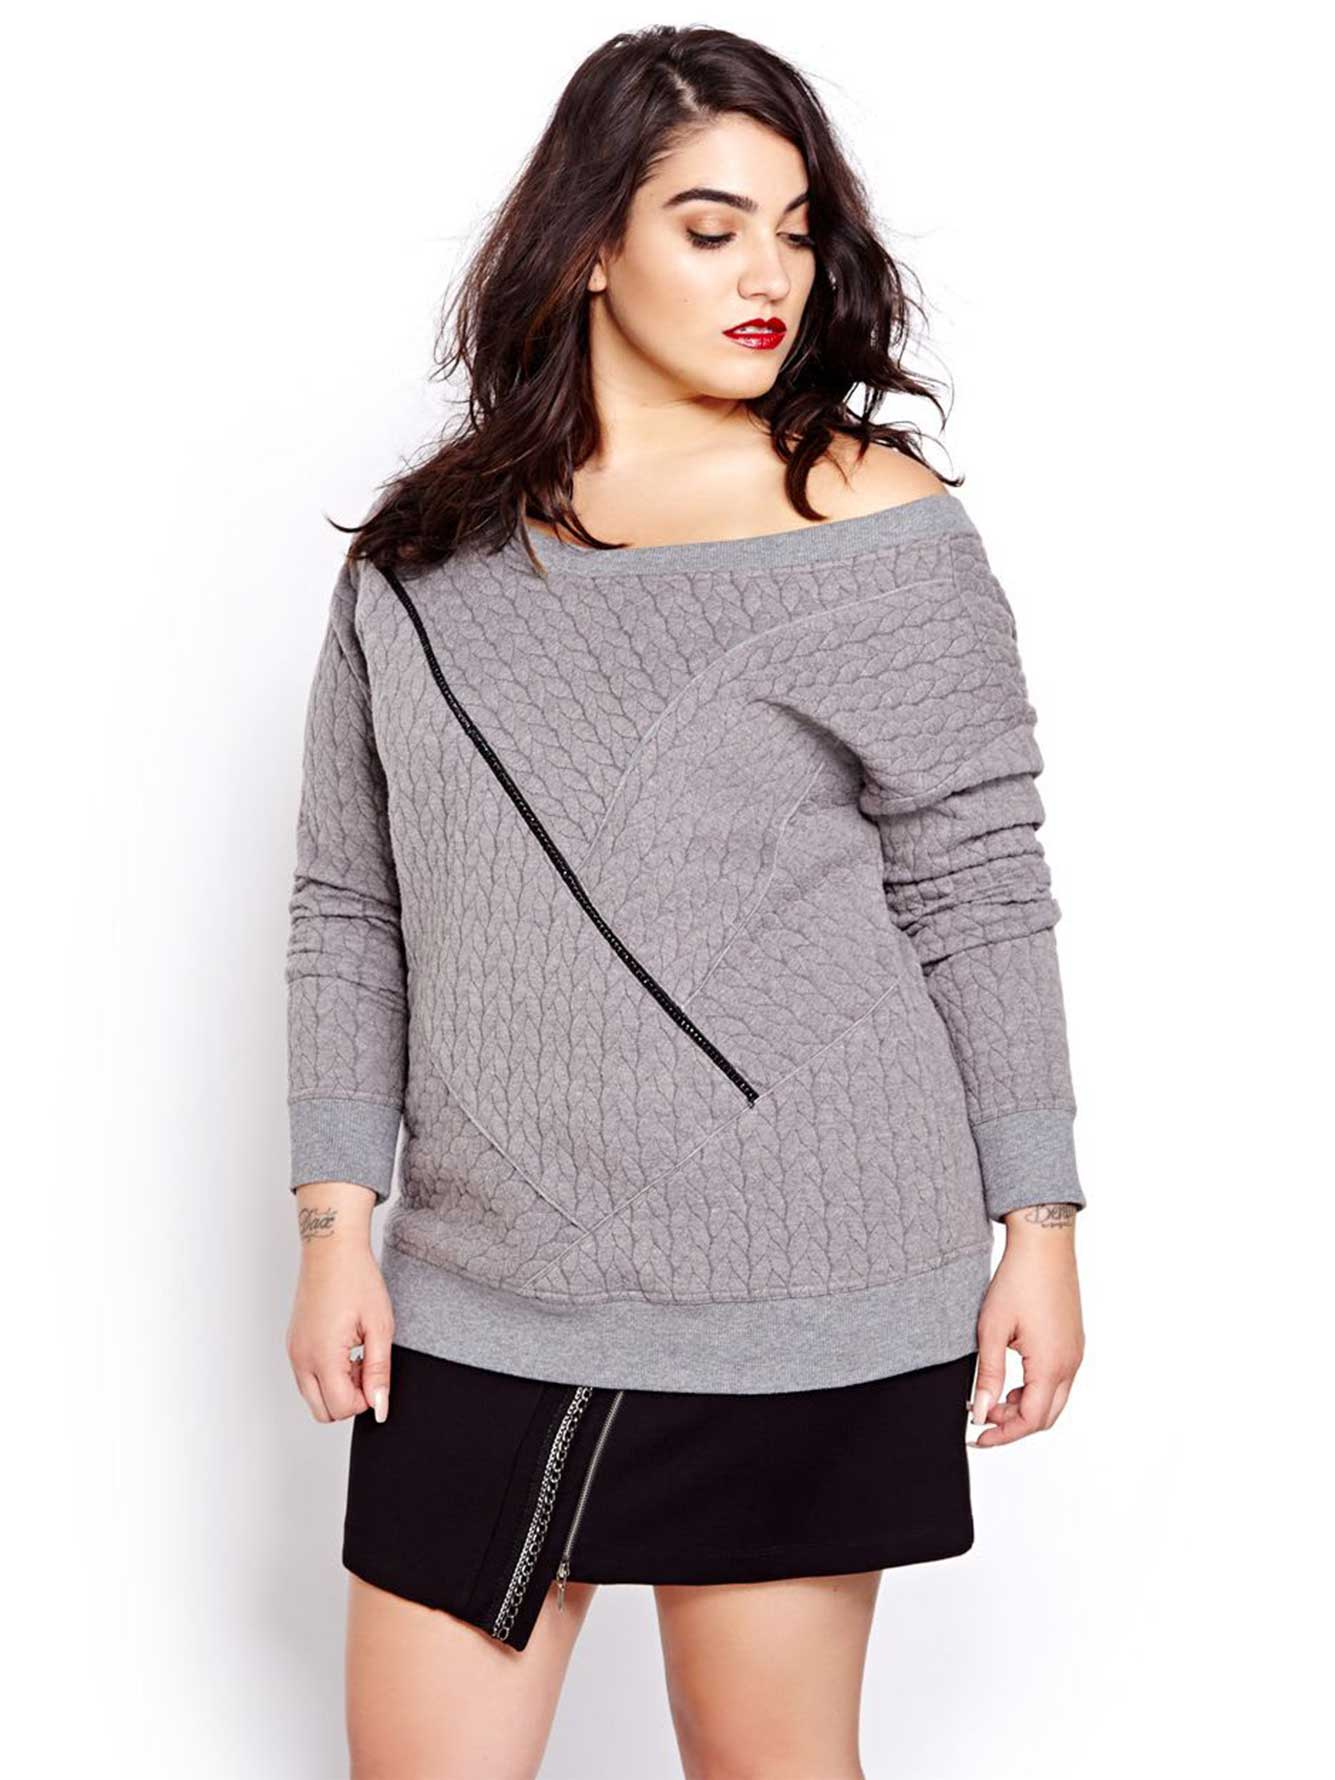 Nadia Aboulhosn Cable Knit Sweat Shirt for L&L